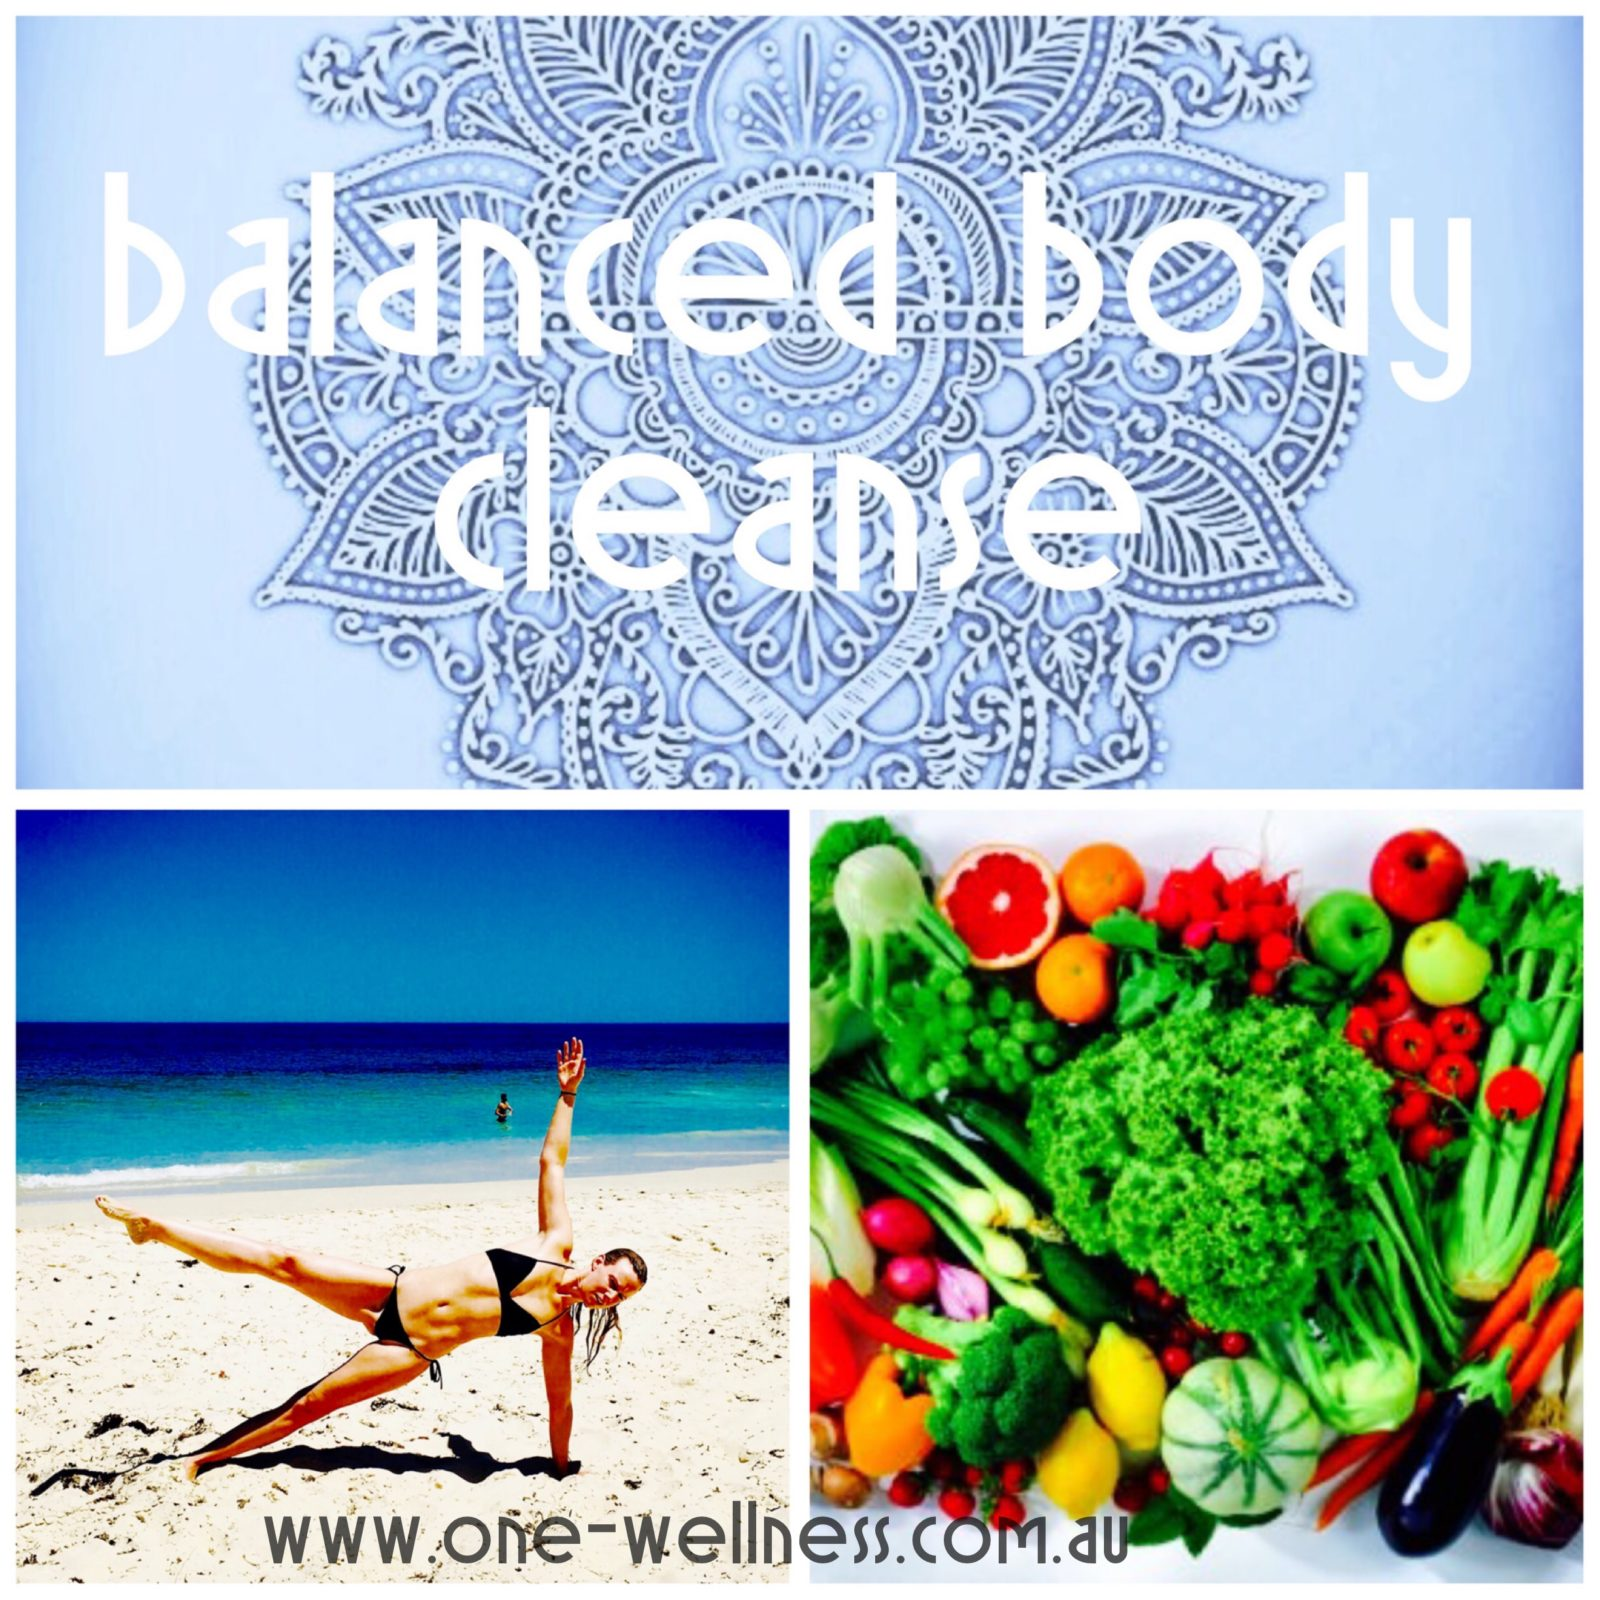 Balanced Body Cleanse